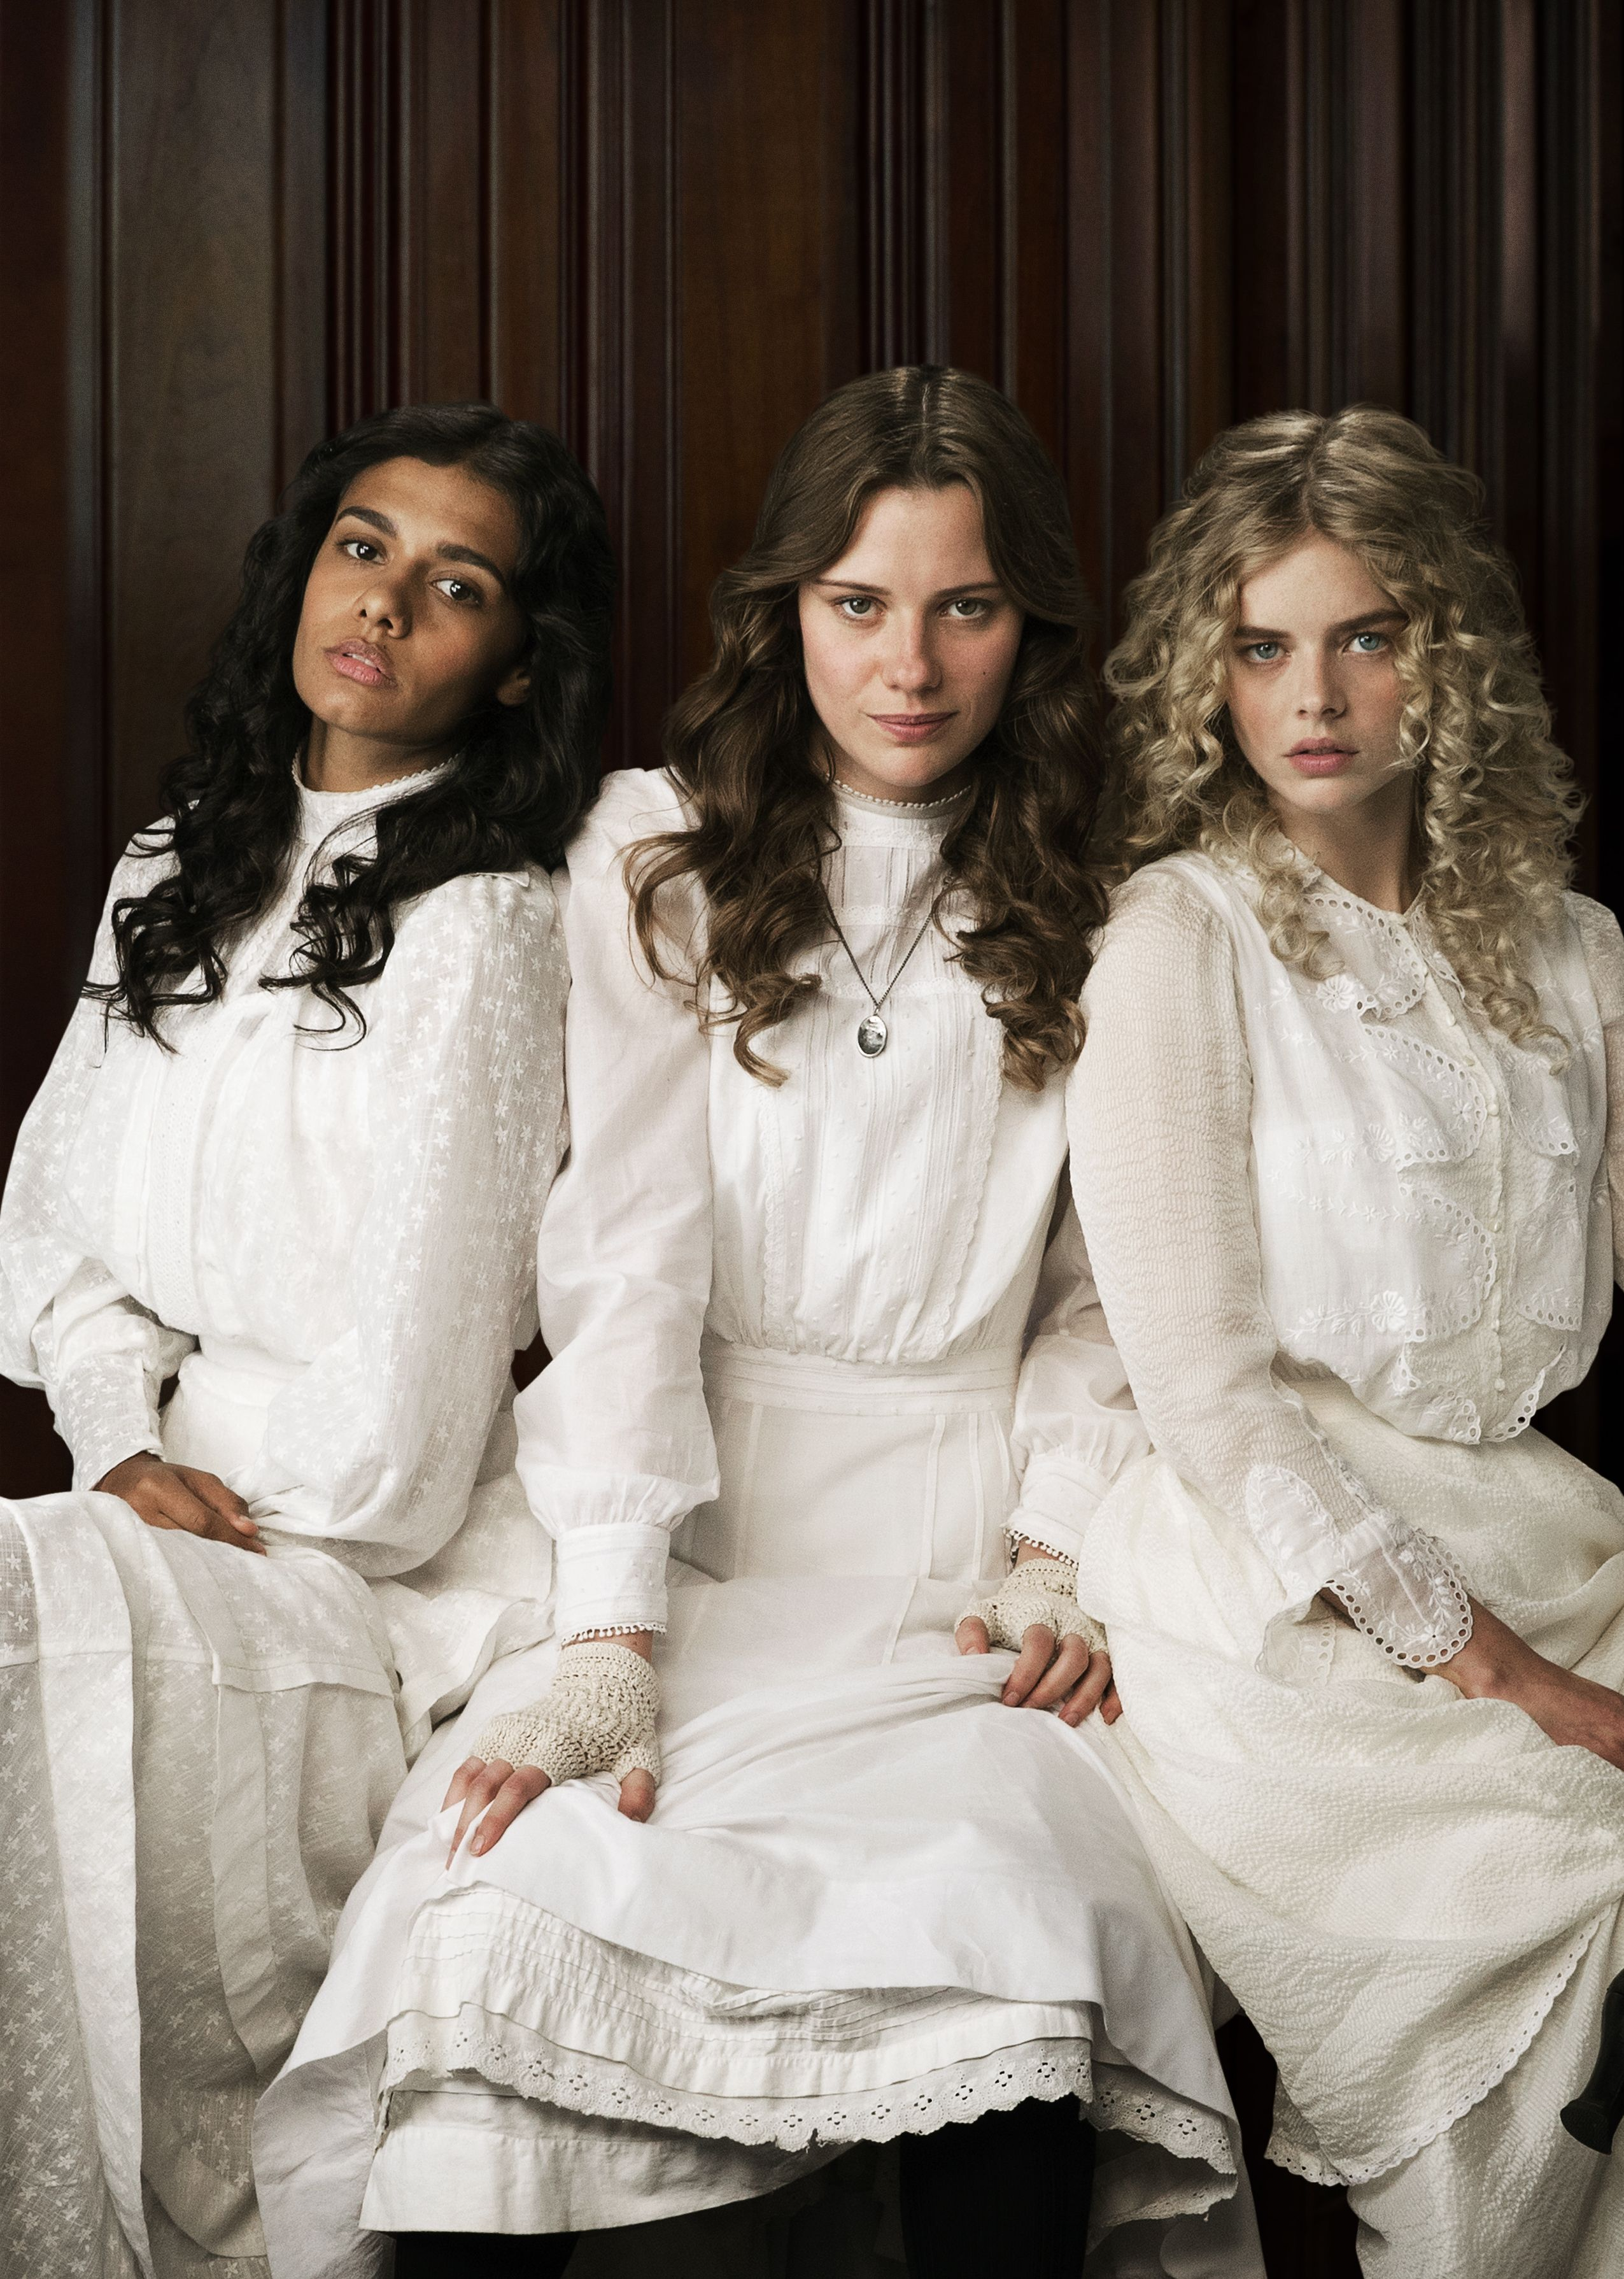 Picnic At Hanging Rock Histoire Vraie : picnic, hanging, histoire, vraie, Story, Behind, 'Picnic, Hanging, Rock', Picnic, Rock,, Dresses,, Costume